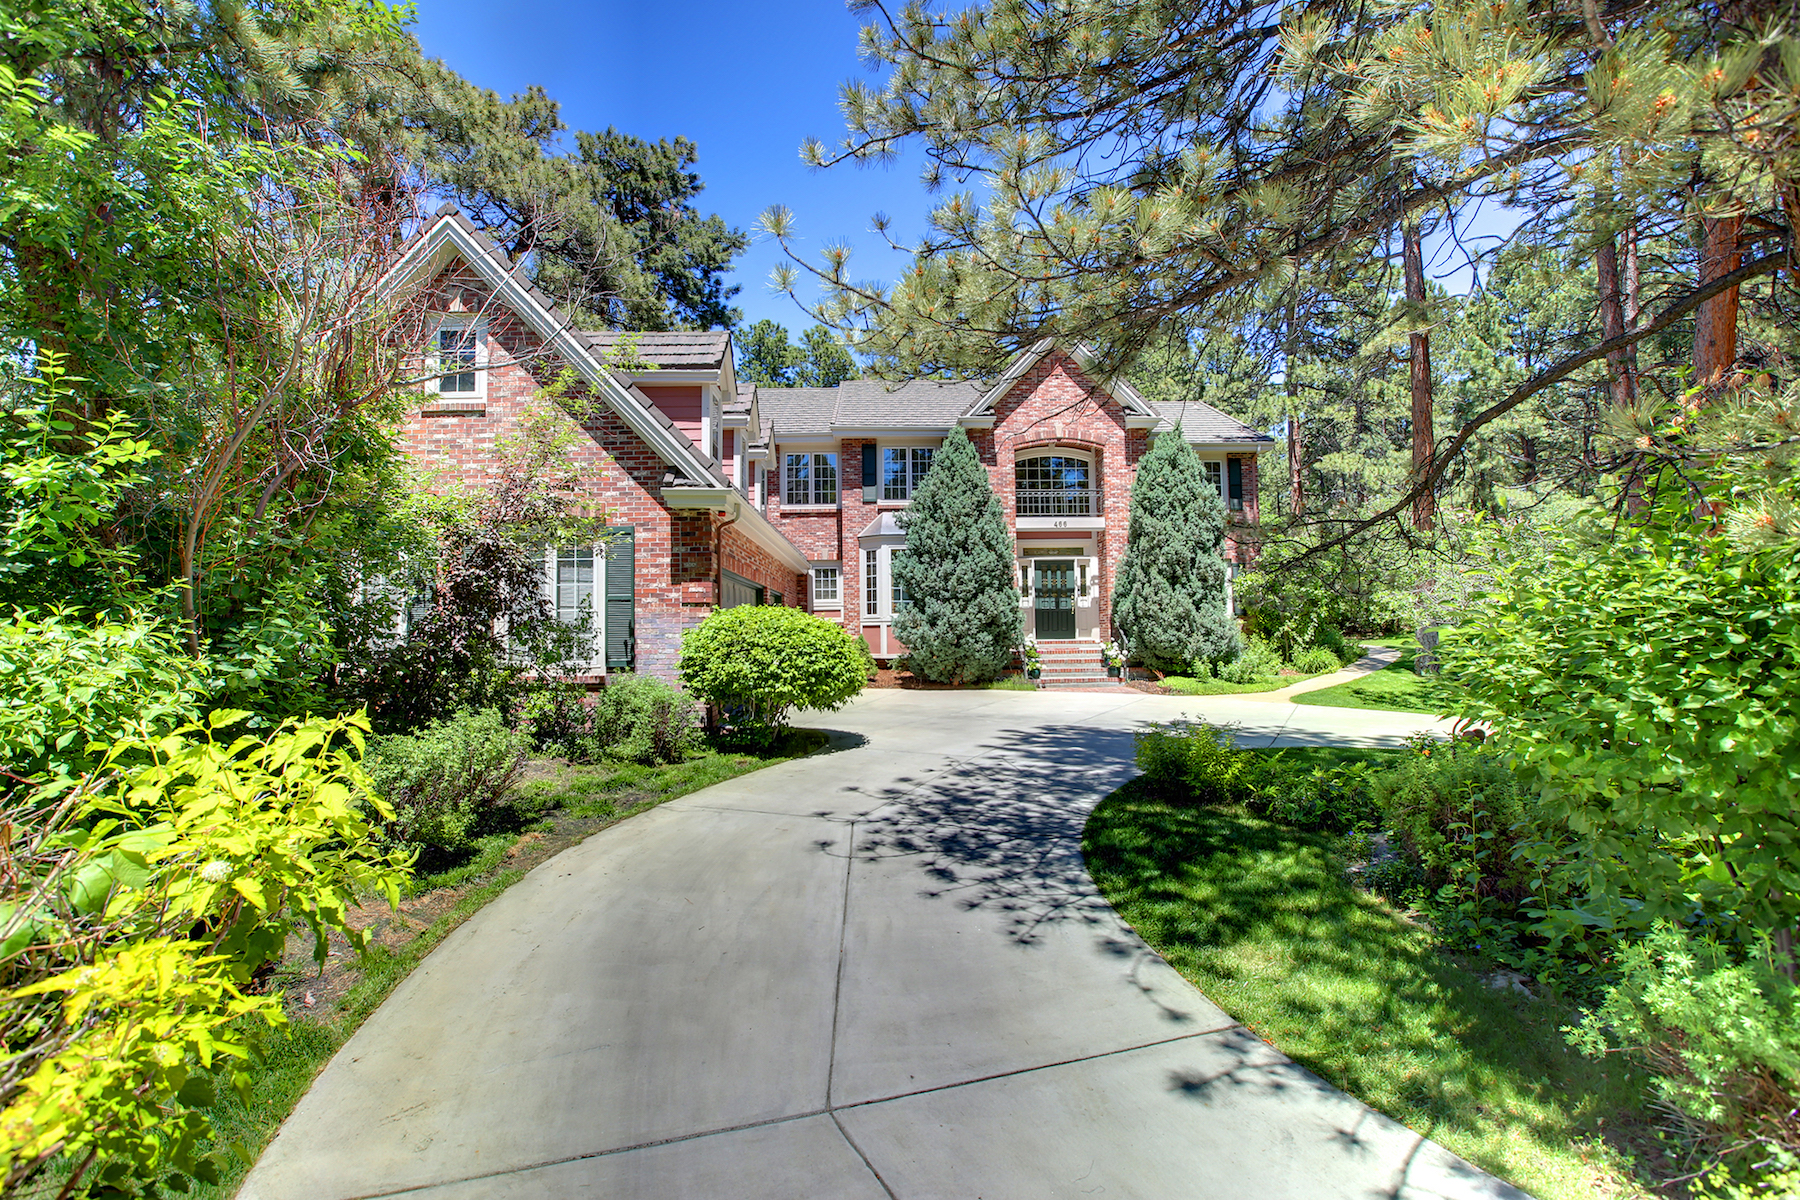 Single Family Home for Sale at Located on a quiet cul-de-sac and tucked between enormous Ponderosa Pines 466 Lorraway Dr Castle Pines Village, Castle Rock, Colorado, 80108 United States